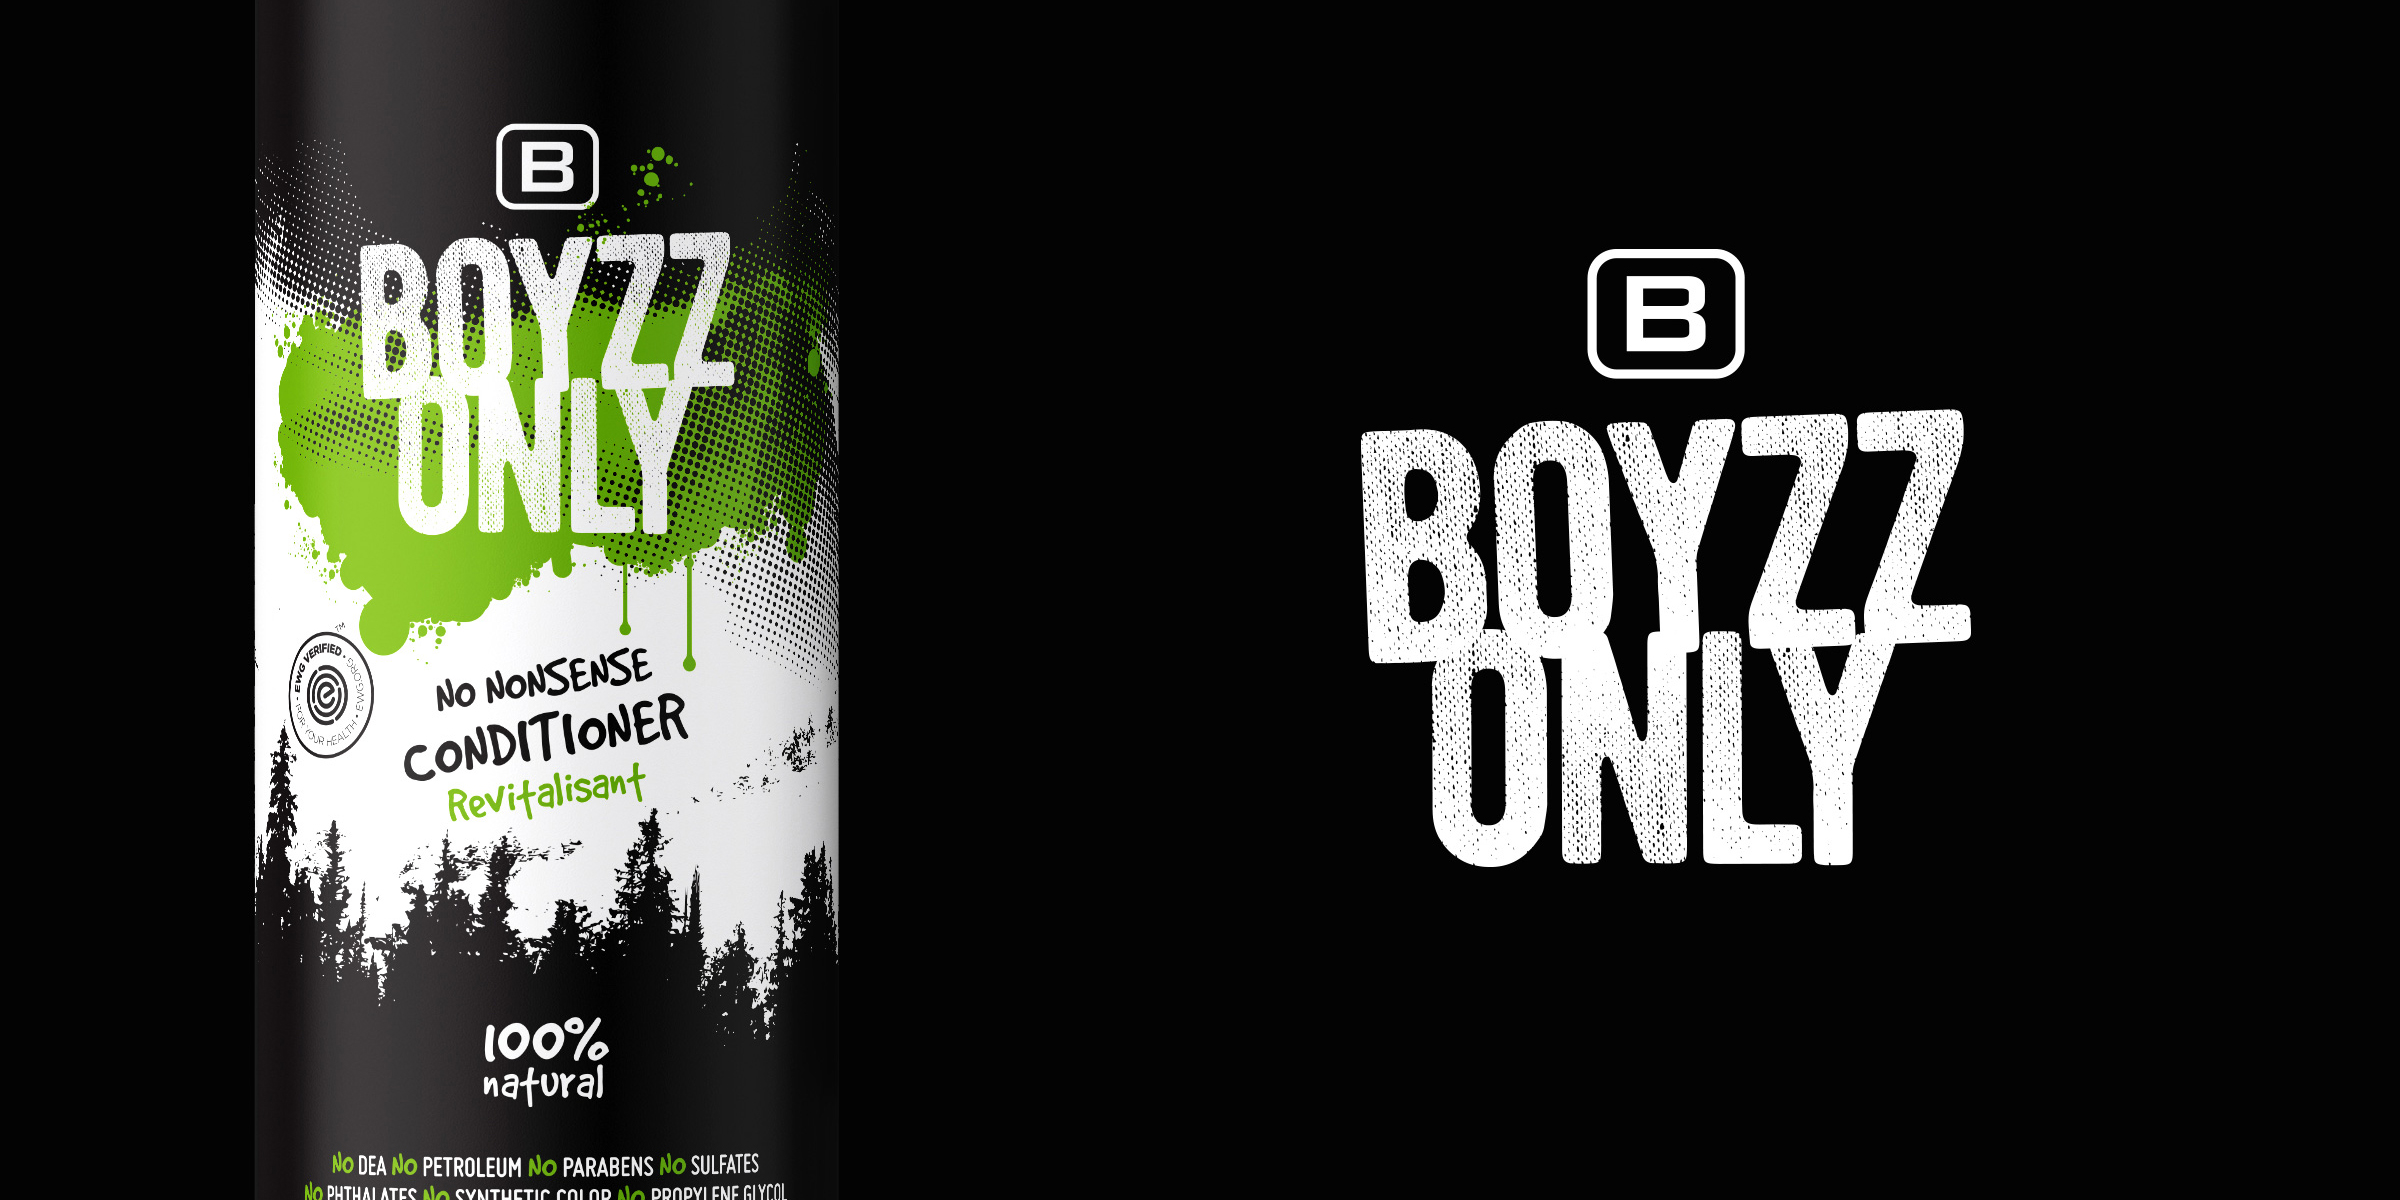 Boyzz Only conditioner and logo design